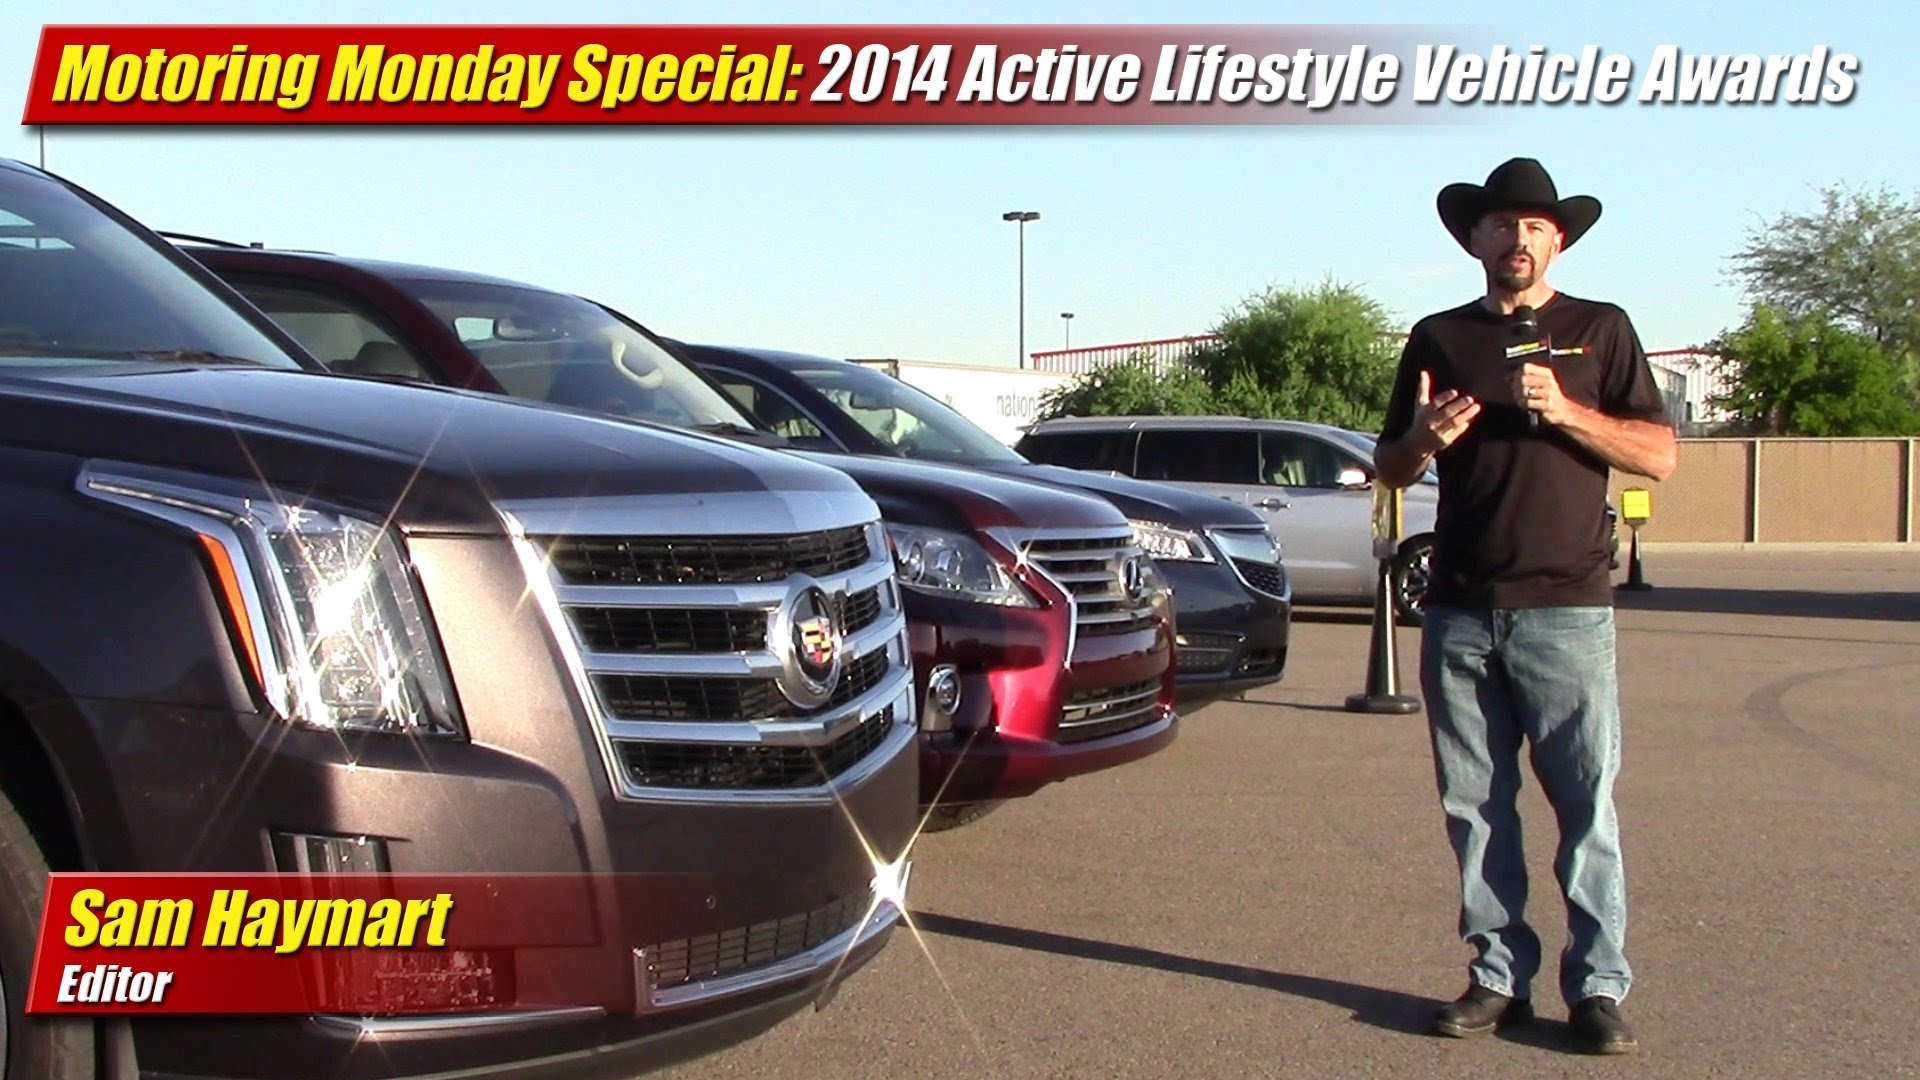 Motoring Monday Special: 2014 Active Lifestyle Vehicle Awards